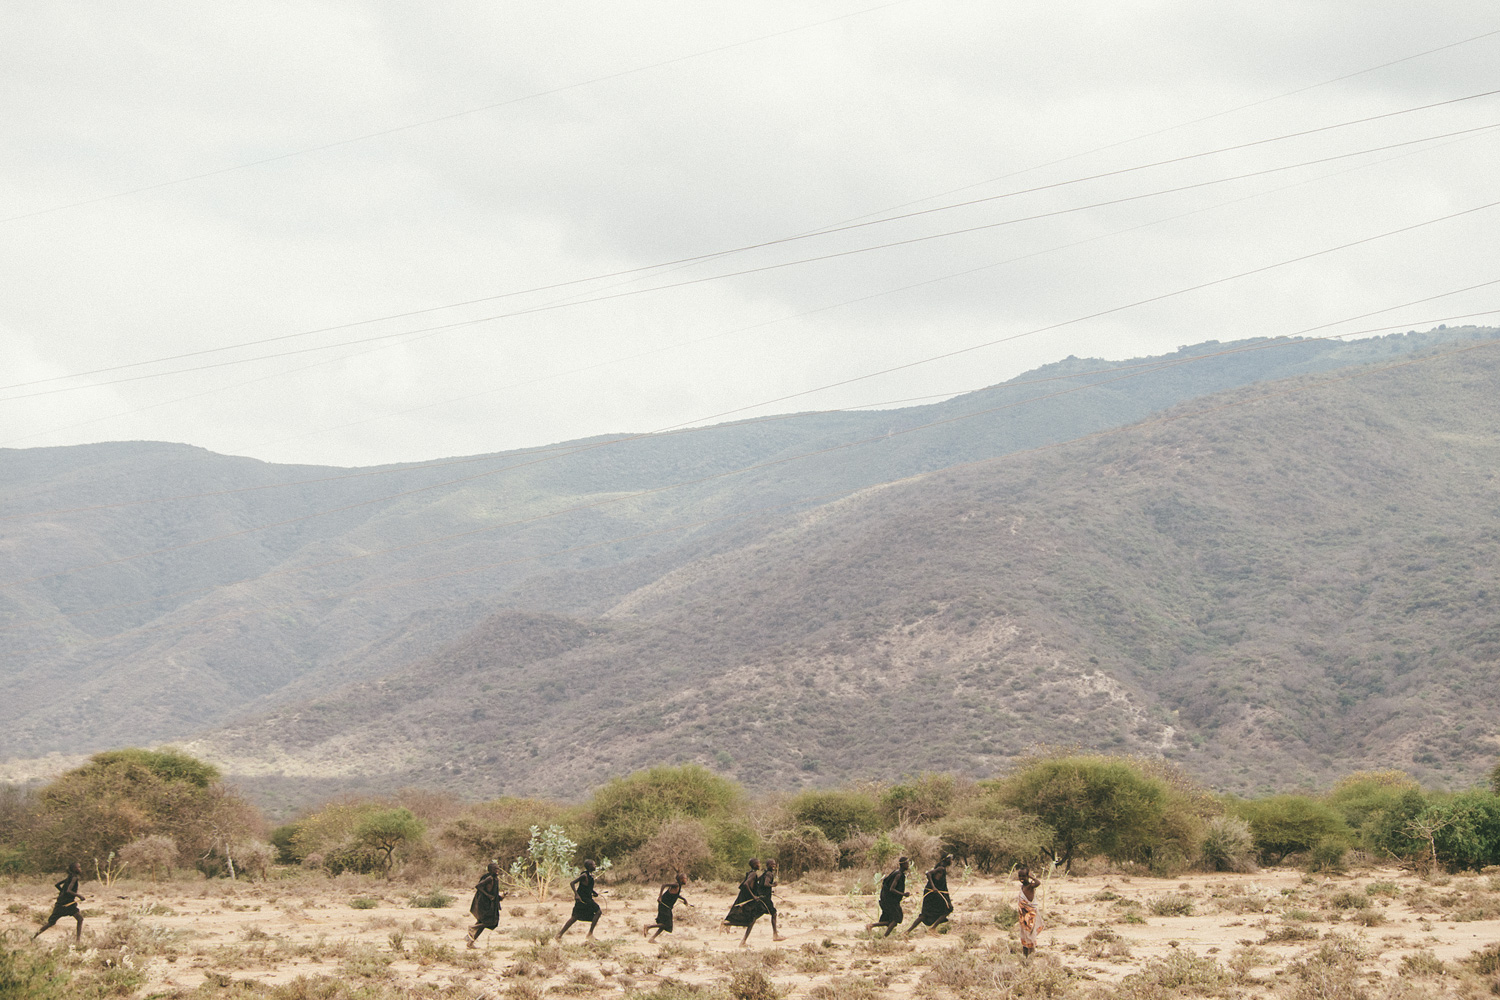 ^ Masai boys out on their Enkipaata, a ritual where a group of boys ages 14-16 travel alone across their territory for a period of up to 4 months before undergoing their circumcision ceremony back at their home.